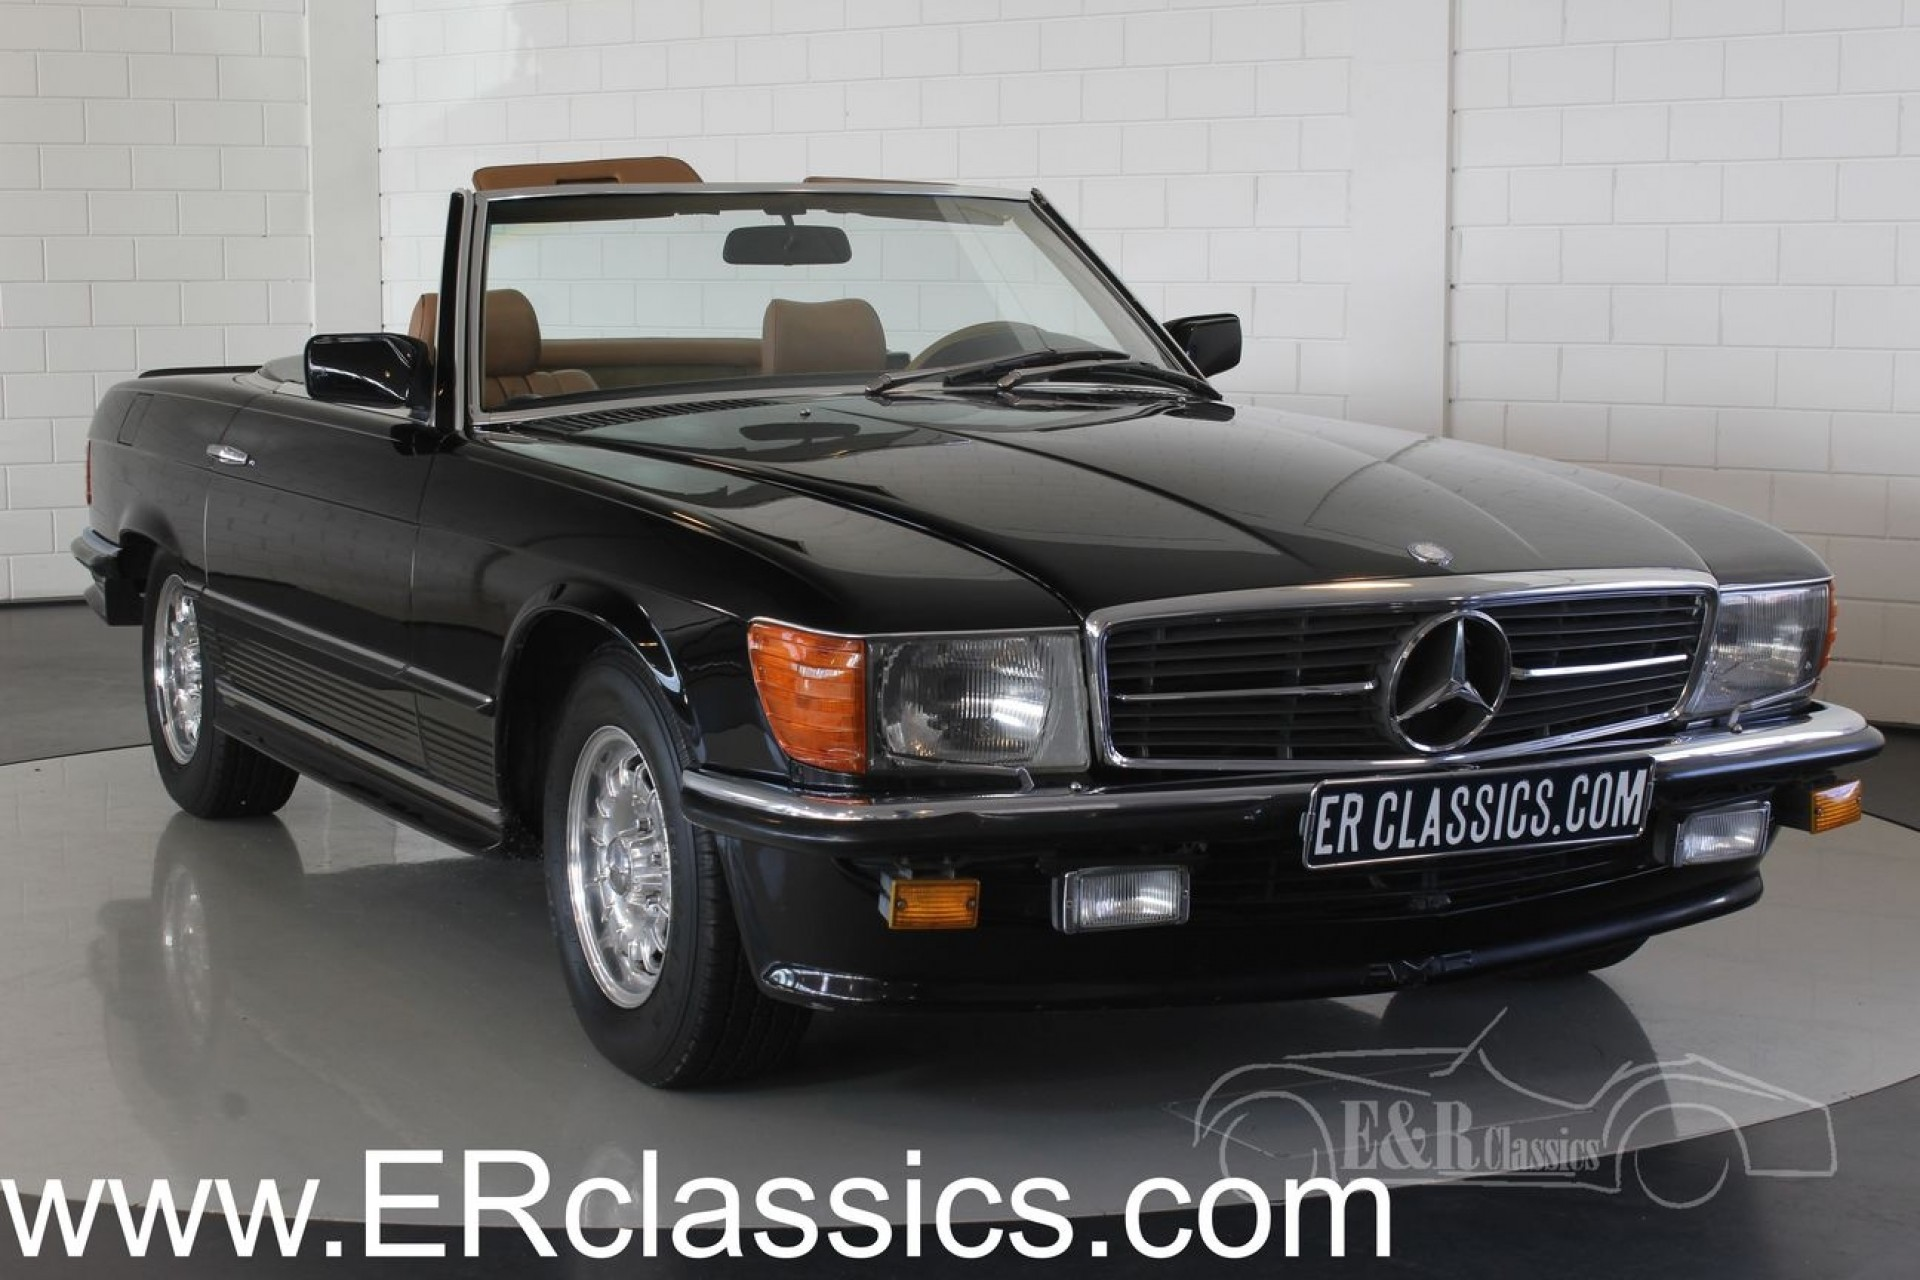 mercedes benz 380 sl cabriolet 1985 vendre erclassics. Black Bedroom Furniture Sets. Home Design Ideas